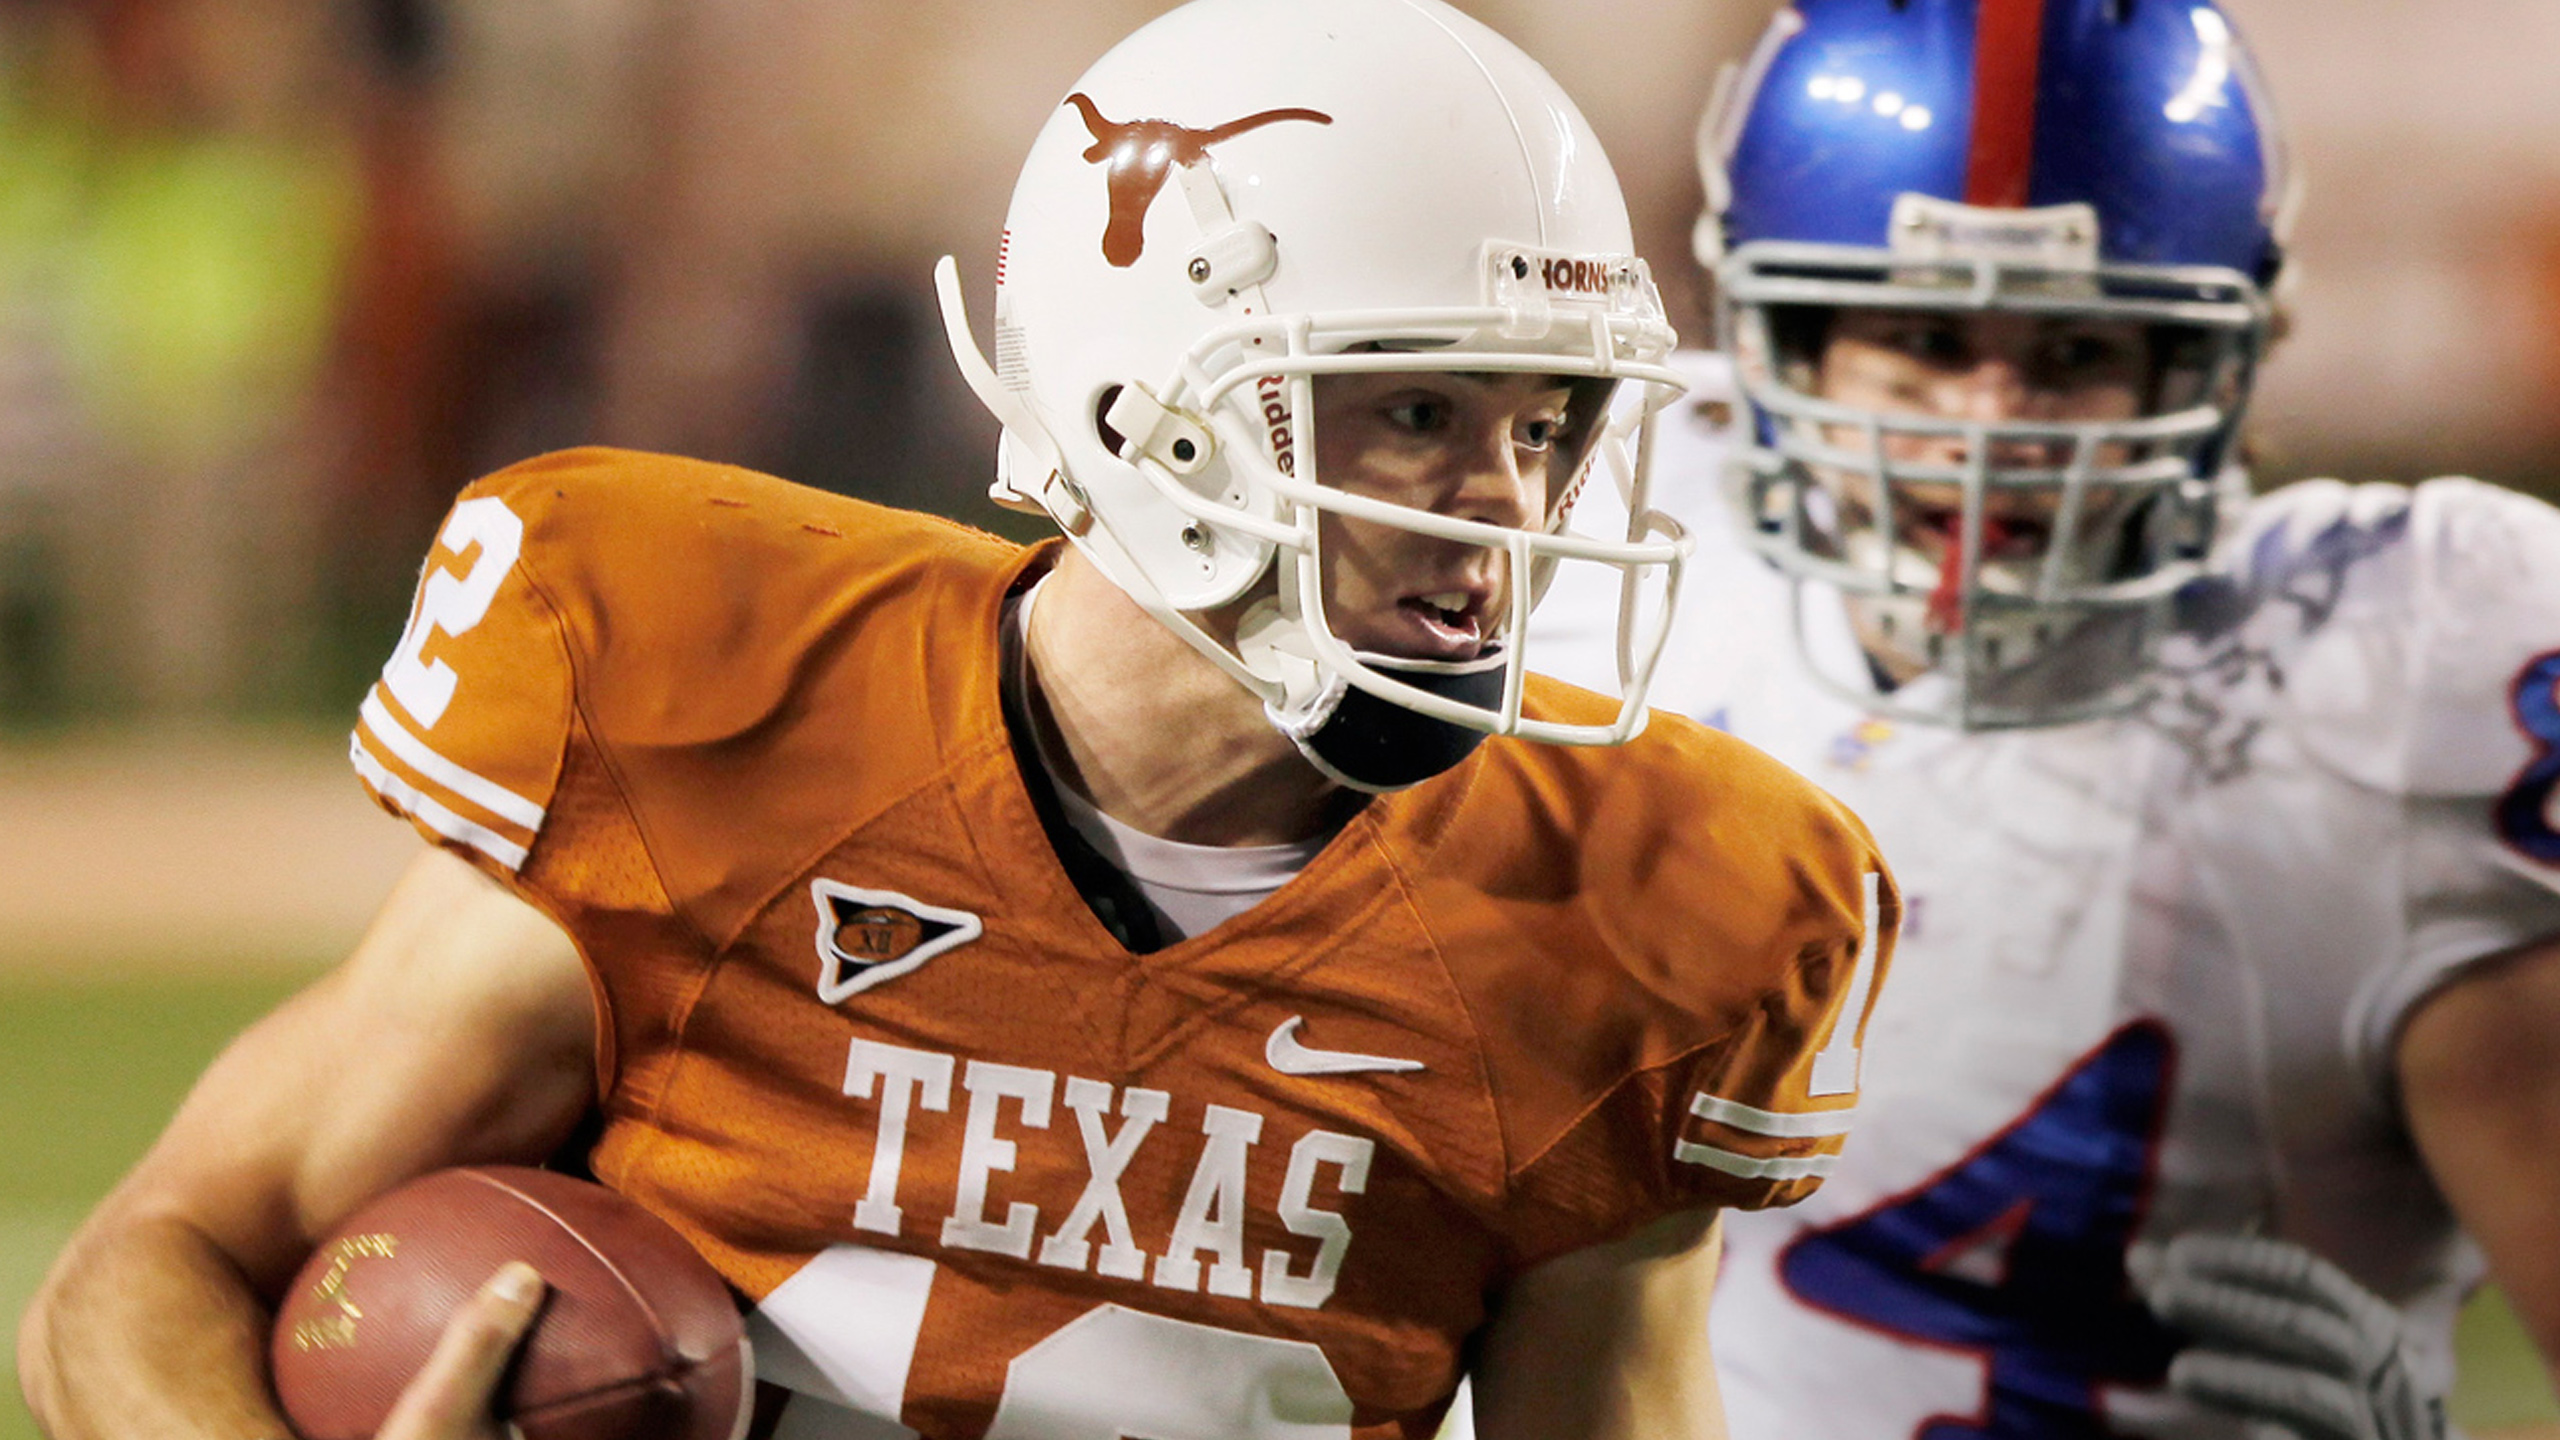 Kansas Jayhawks vs. Texas Longhorns (re-air)